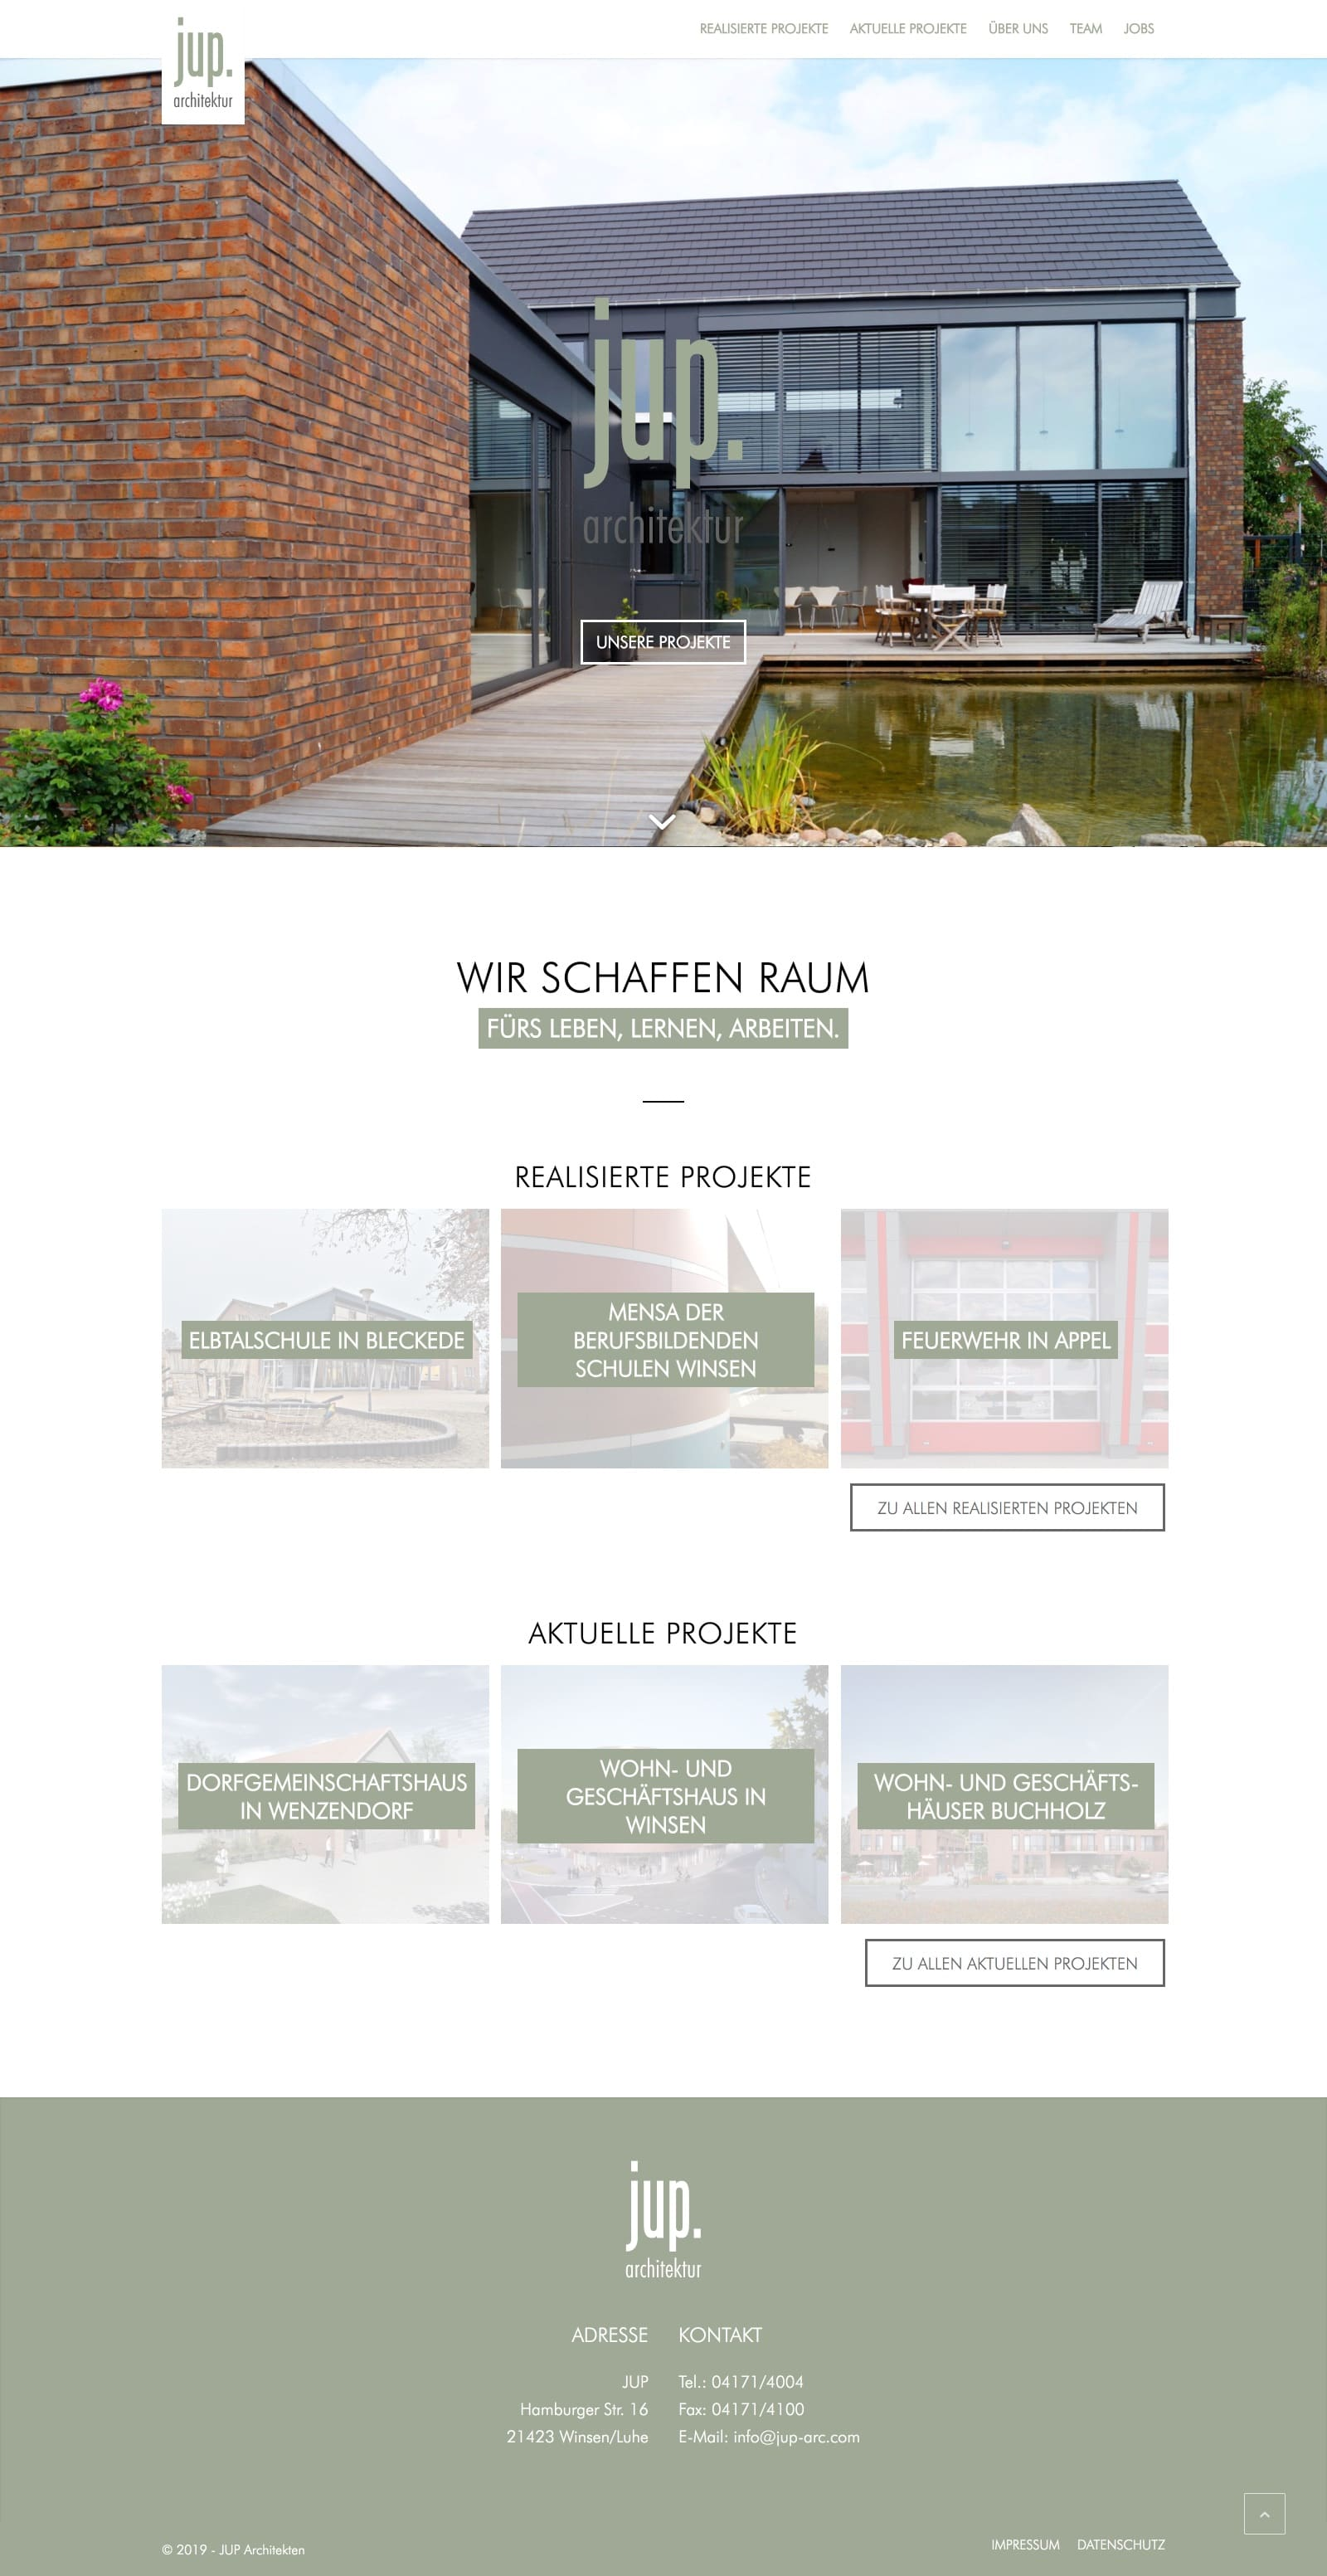 JUP-Architekten - Website